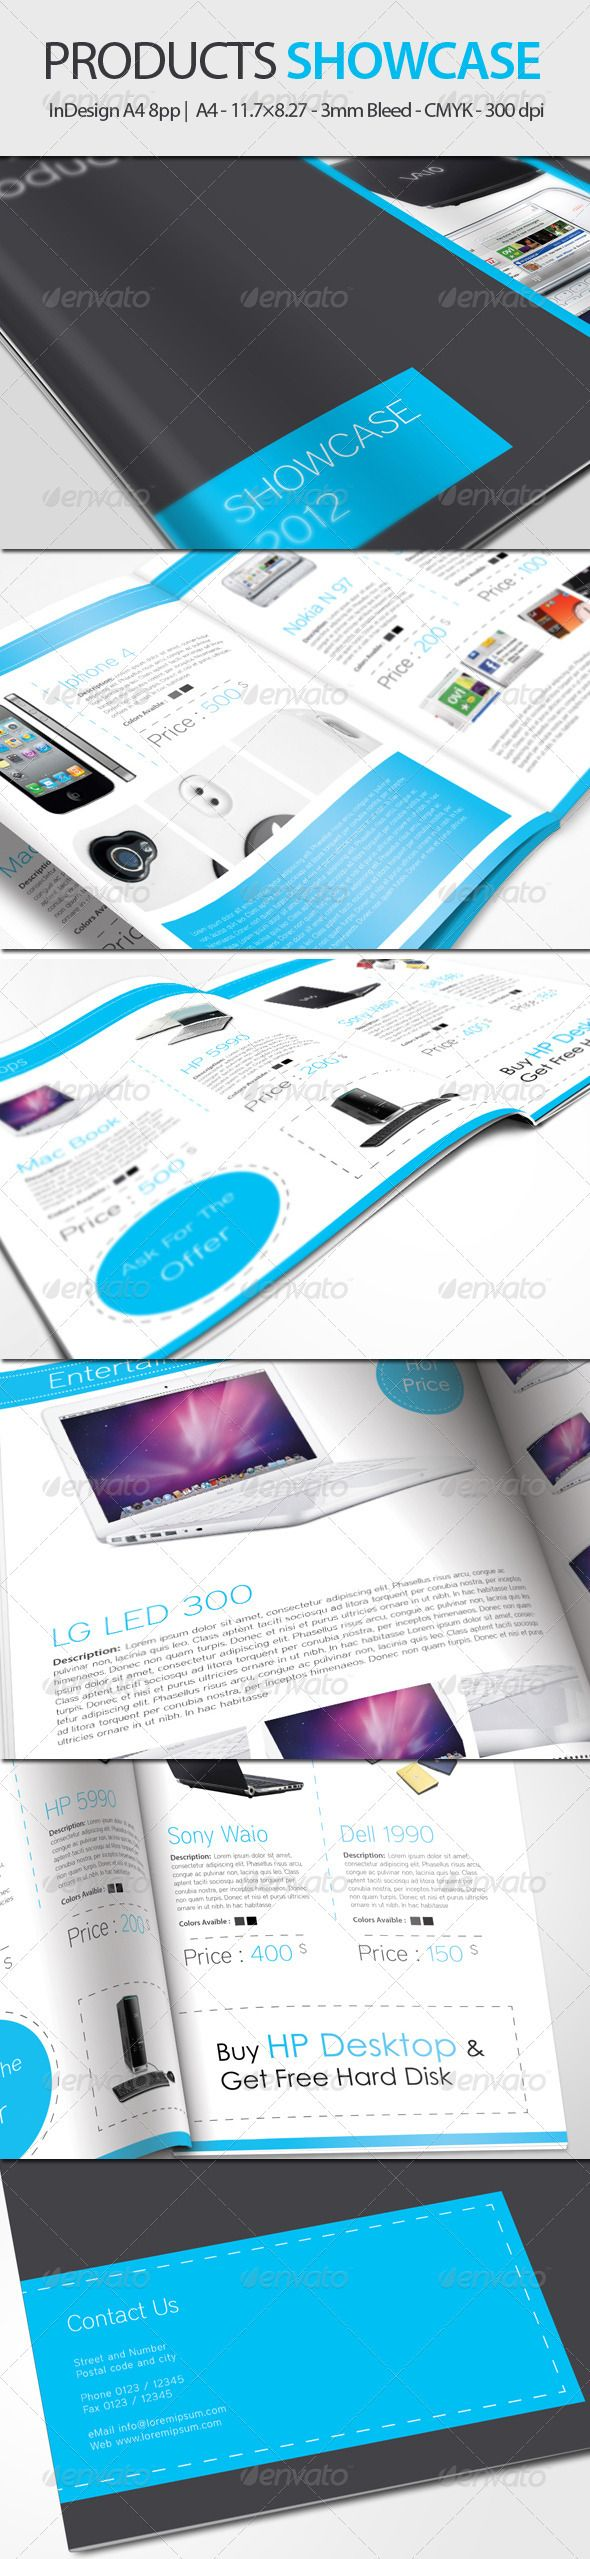 Products Showcase - InDesign A4 8pp | Catálogo, Editorial y Revistas